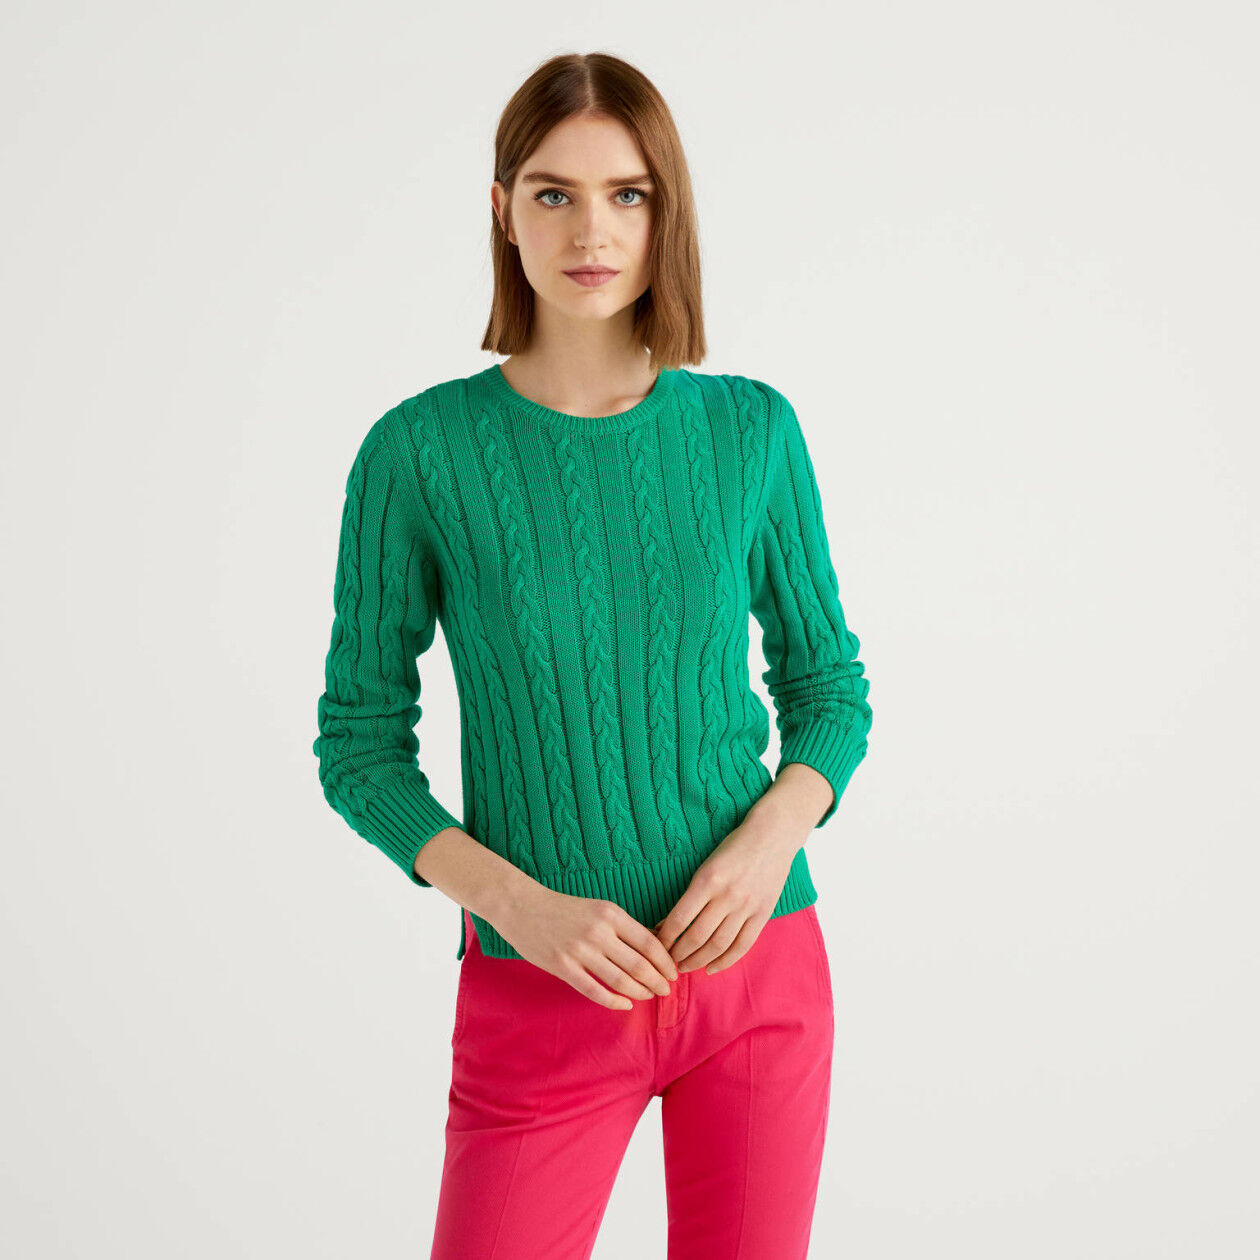 Crew neck sweater with cables